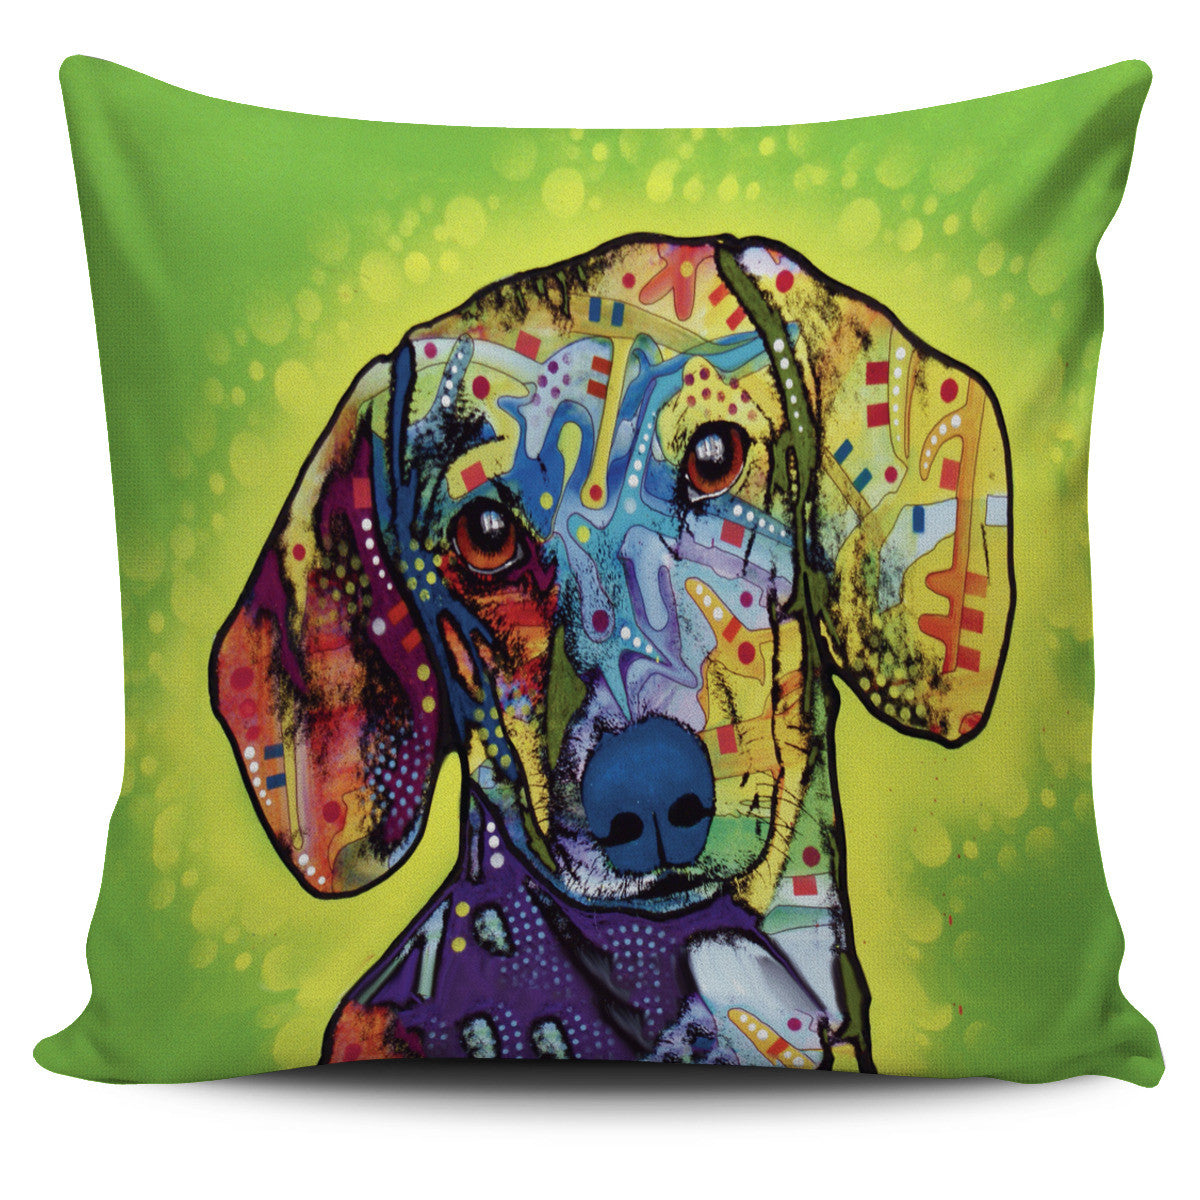 Dachshund Series Pillow Covers Offer